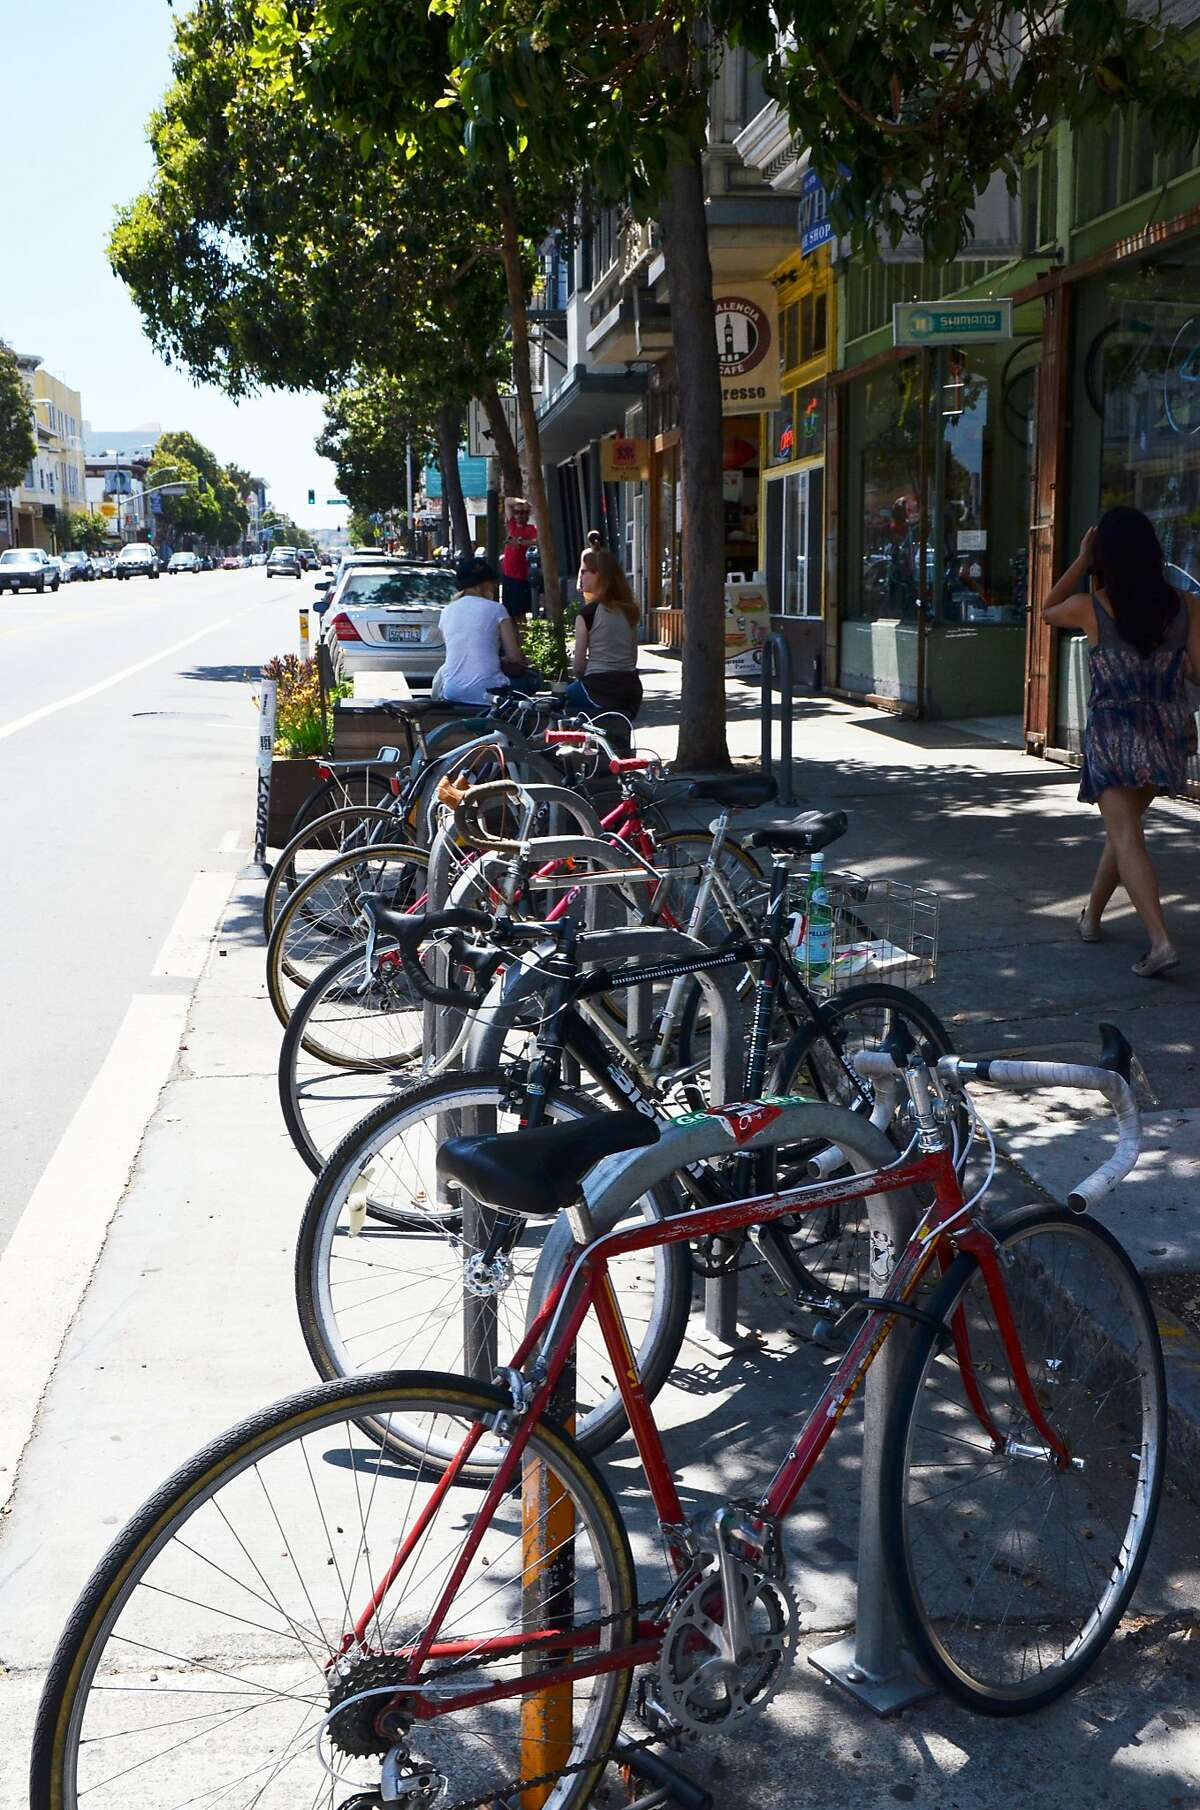 An on-street bike corral on Valencia Street comfortably holds 12 bikes and keeps the sidewalks clear for pedestrians. Requesting bike racks or bike corrals are two ways San Francisco bicyclists can directly improve their commute.